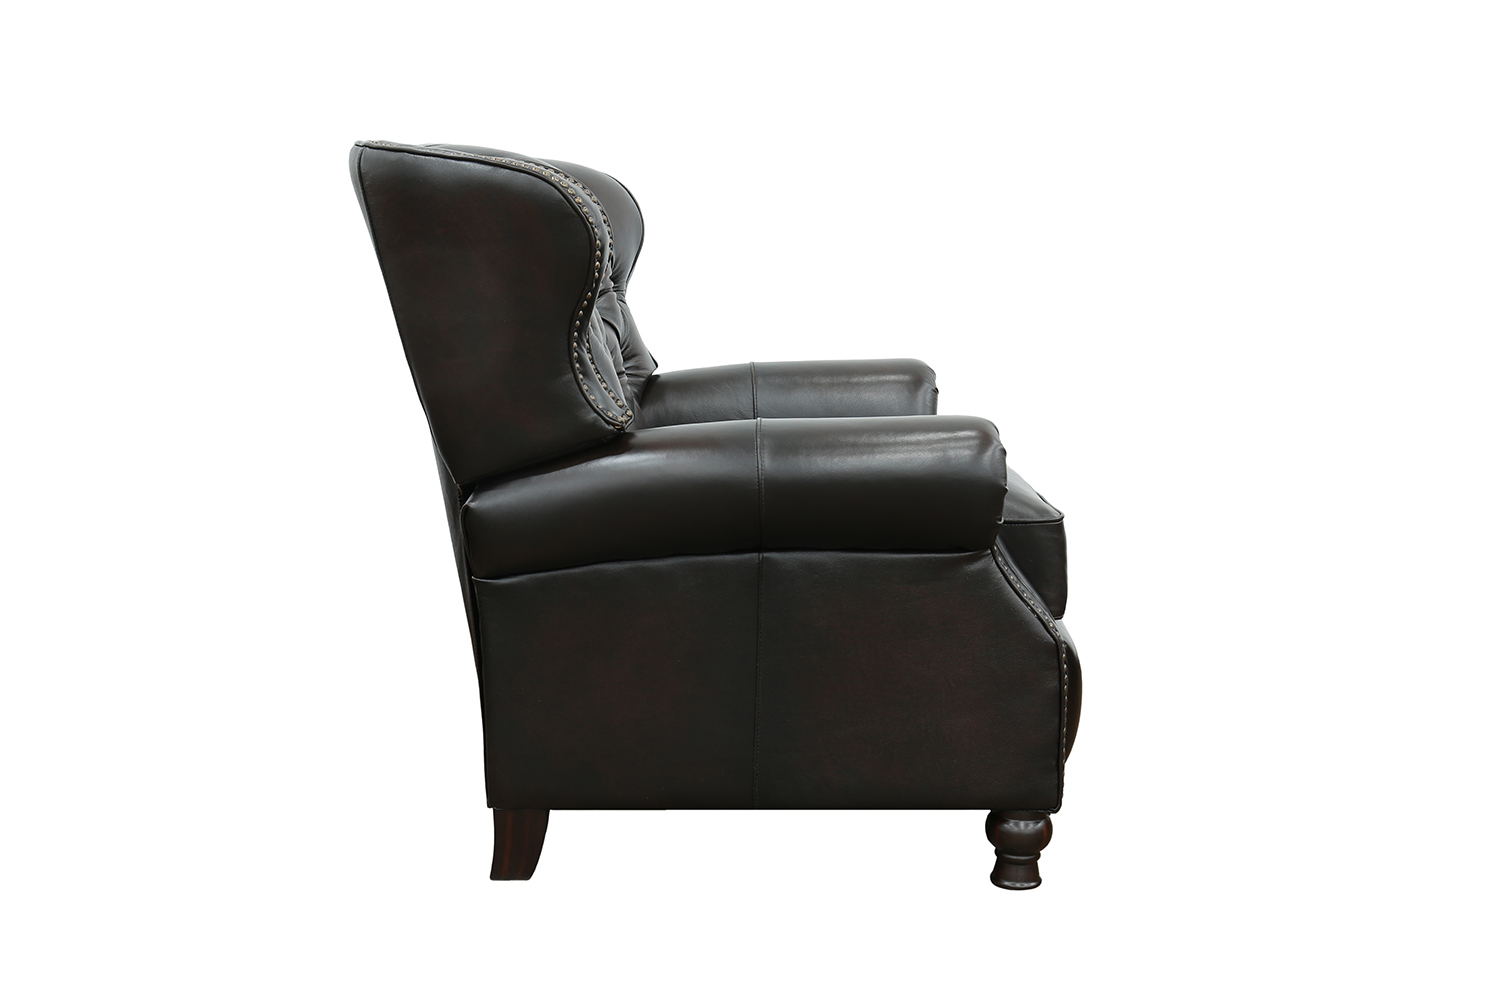 Barcalounger Presidential Recliner Chair - Stetson Coffee/All Leather